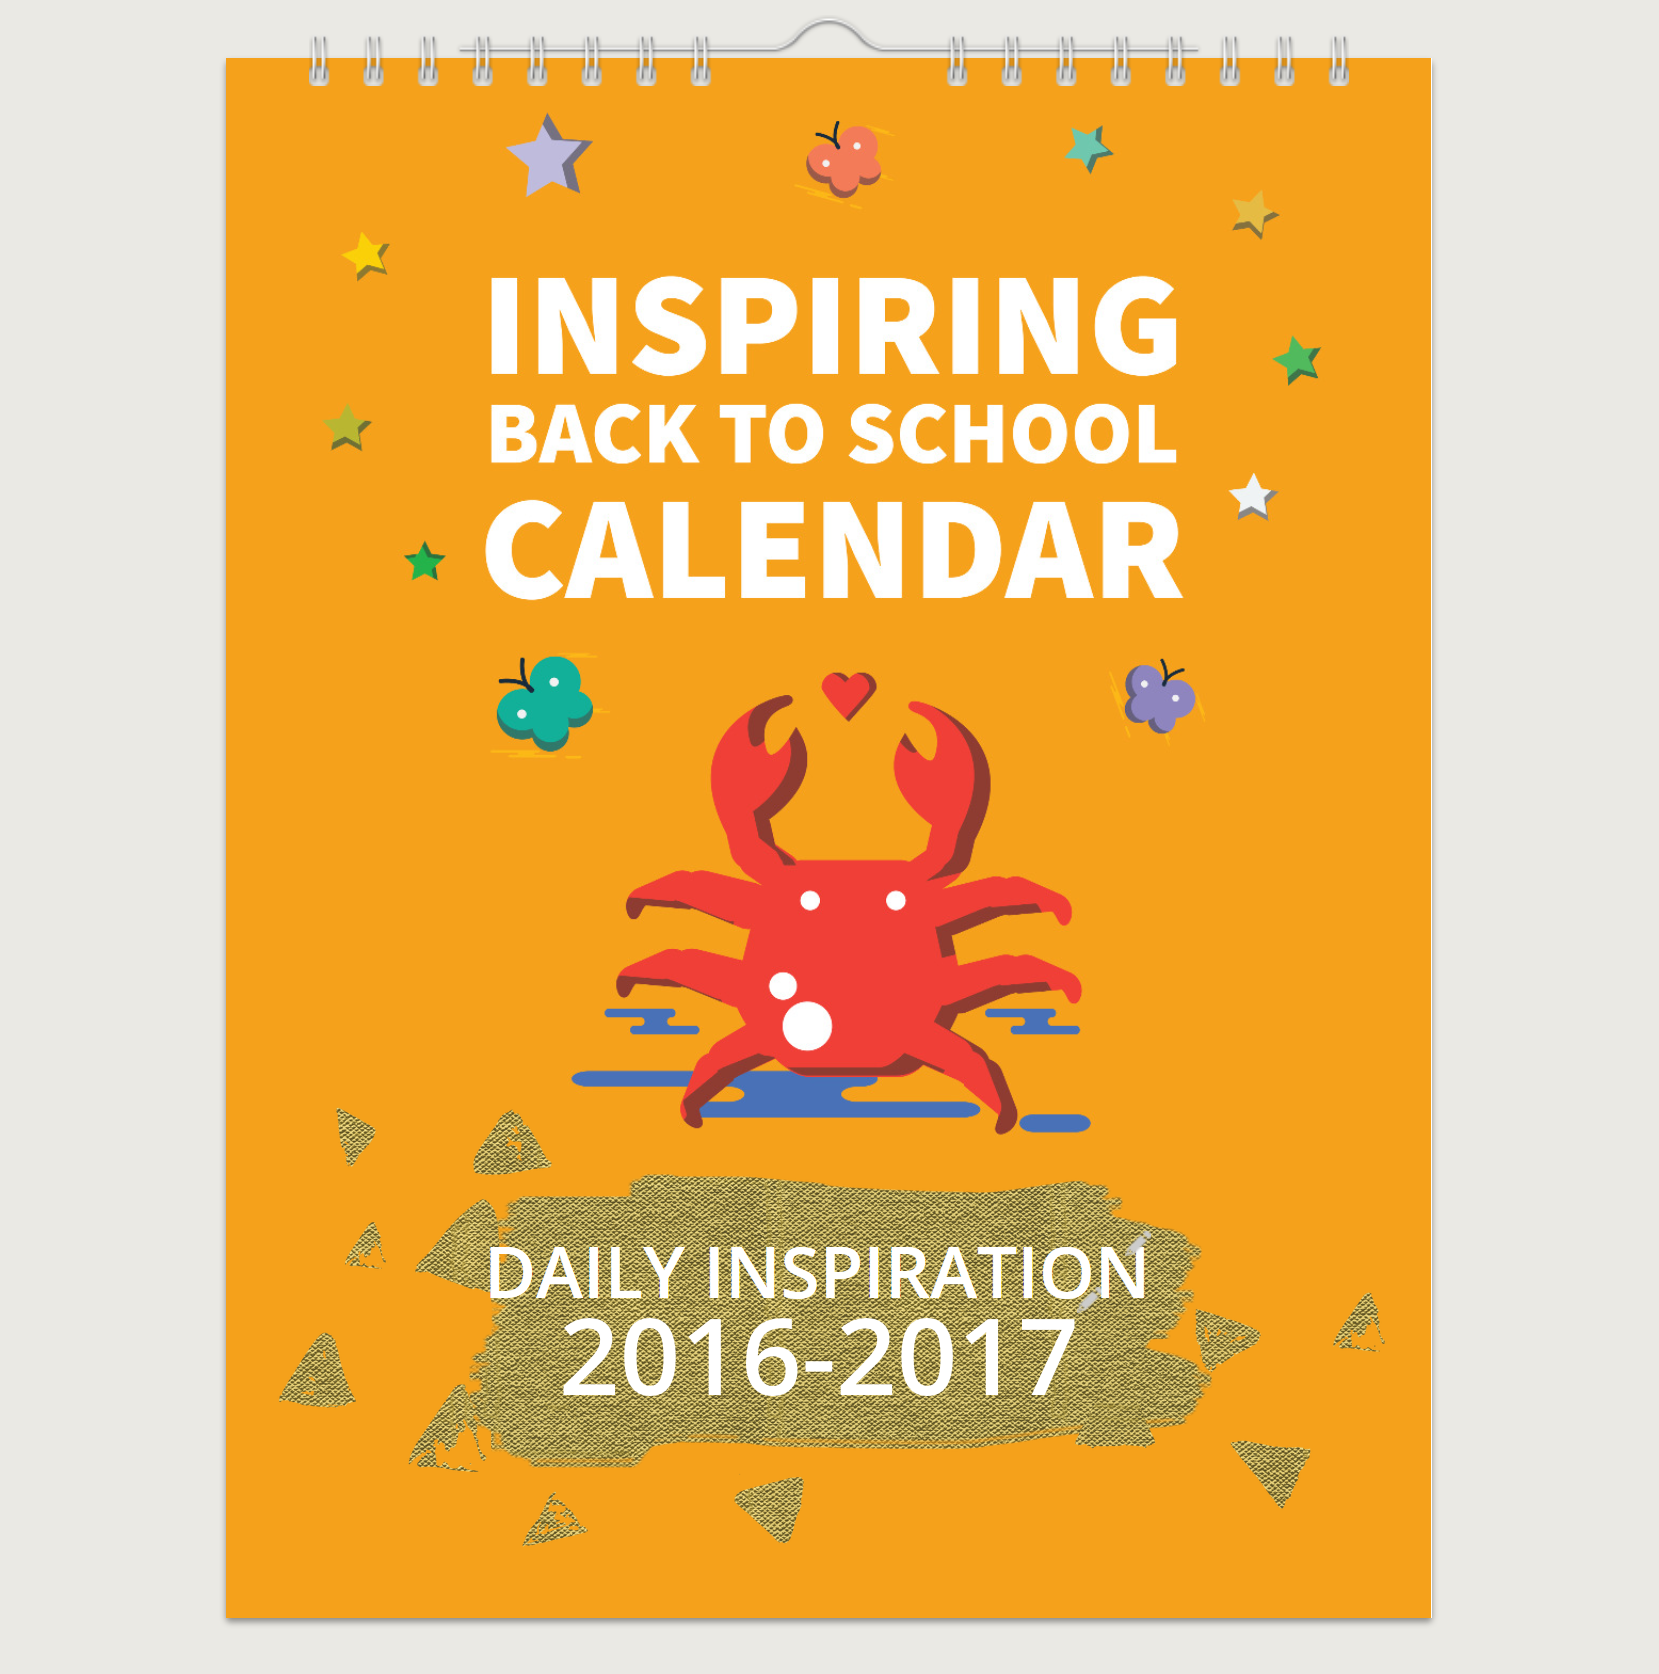 3 Cute Calendars With Inspiring Quotes That Will Make You Smile